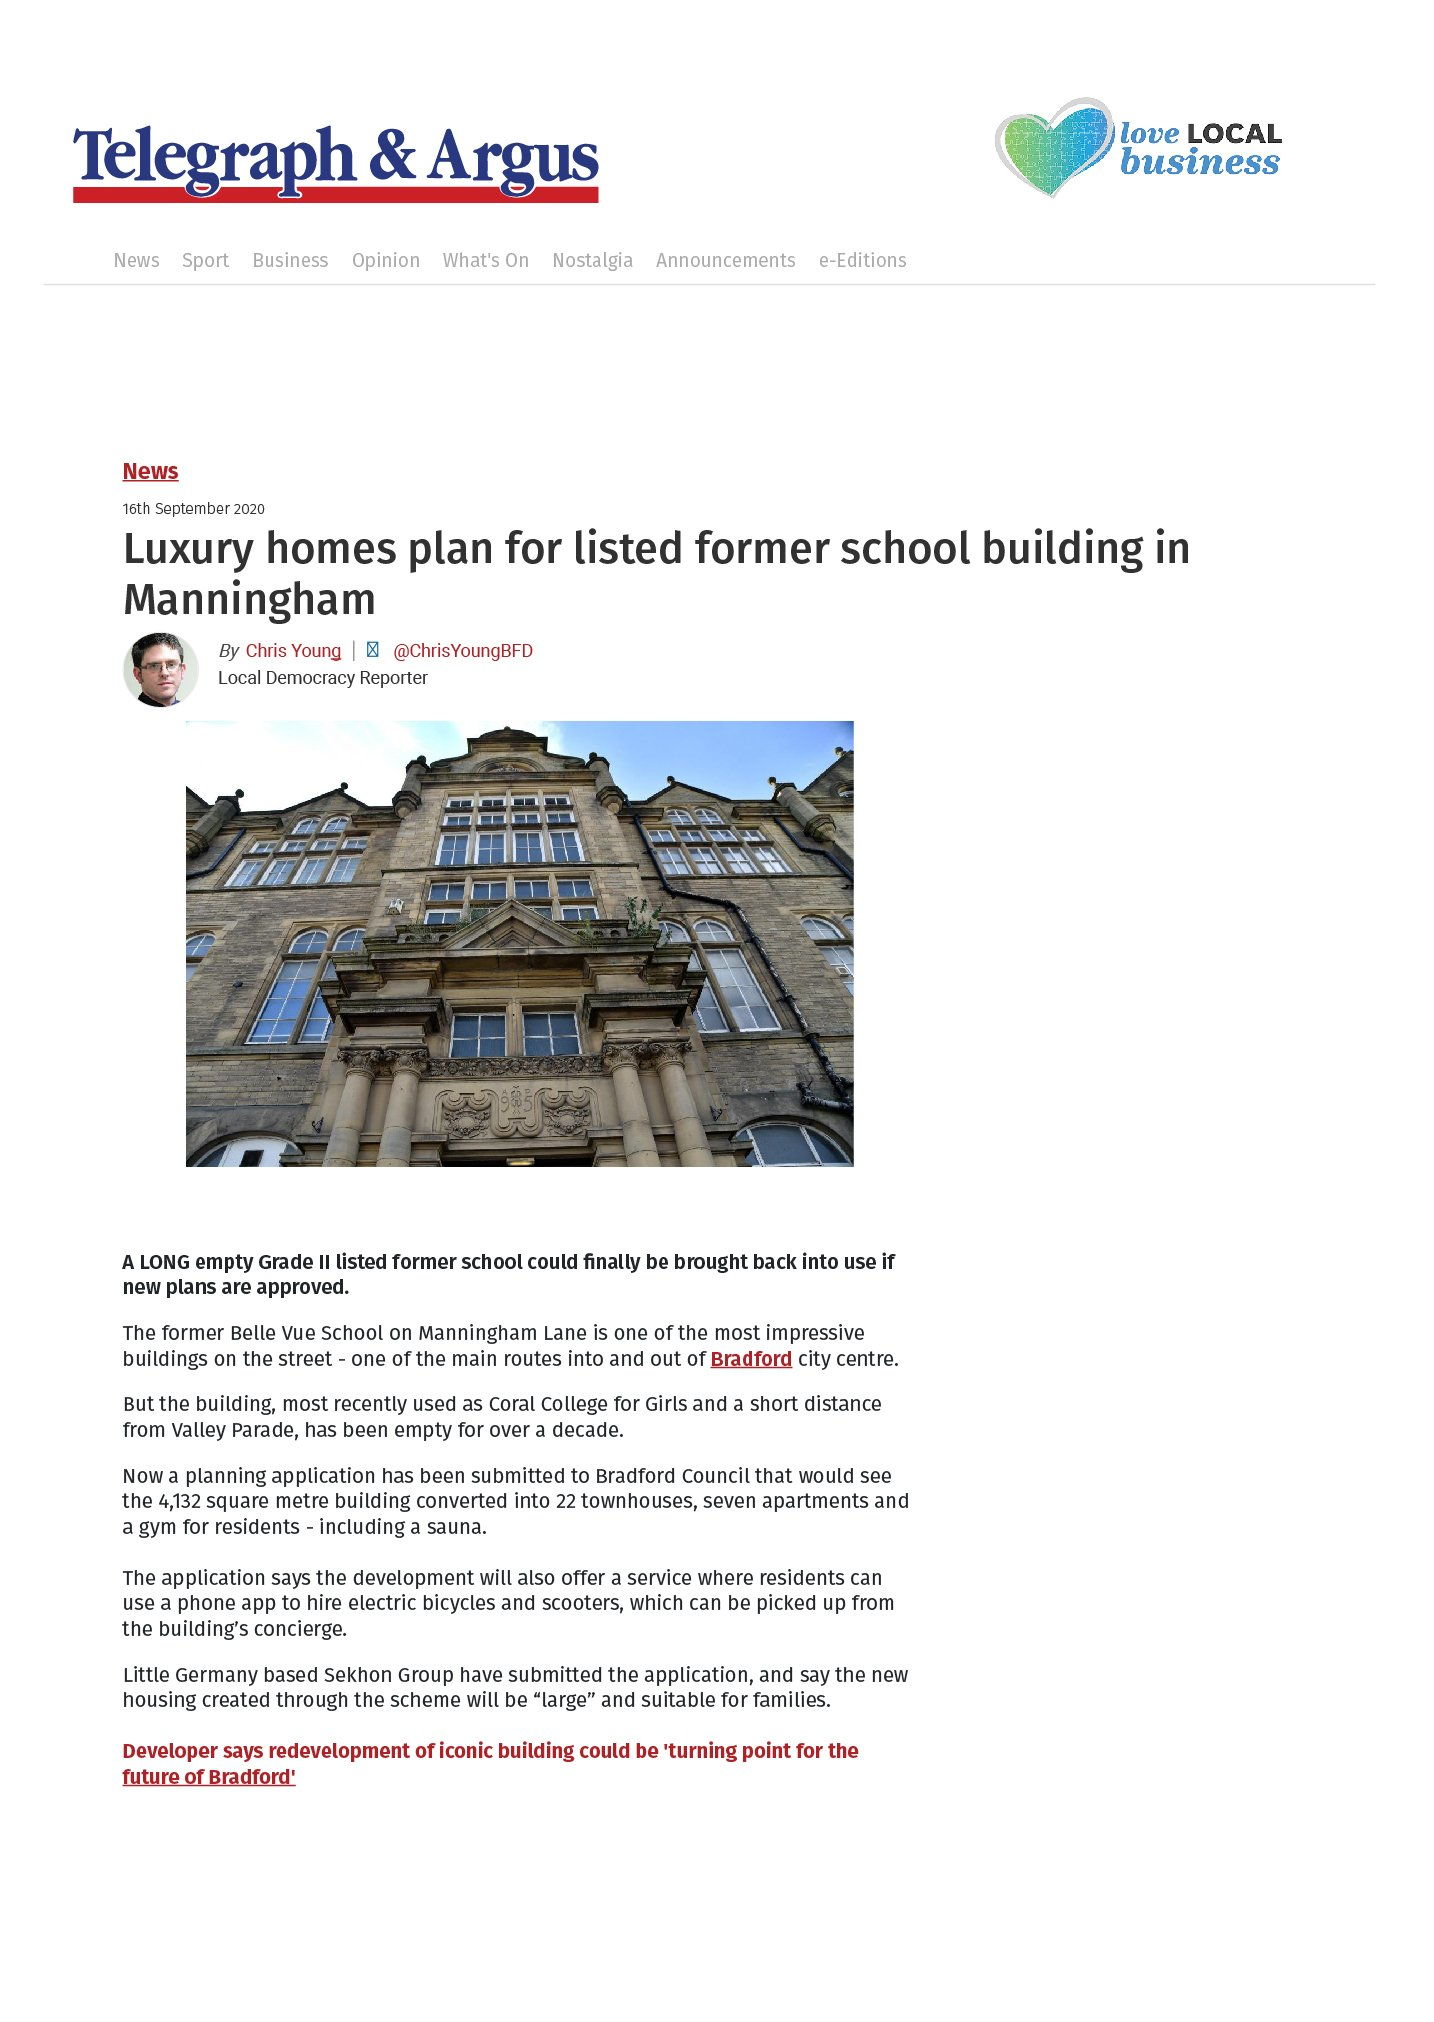 Luxury homes plan for listed former school building in Manningham